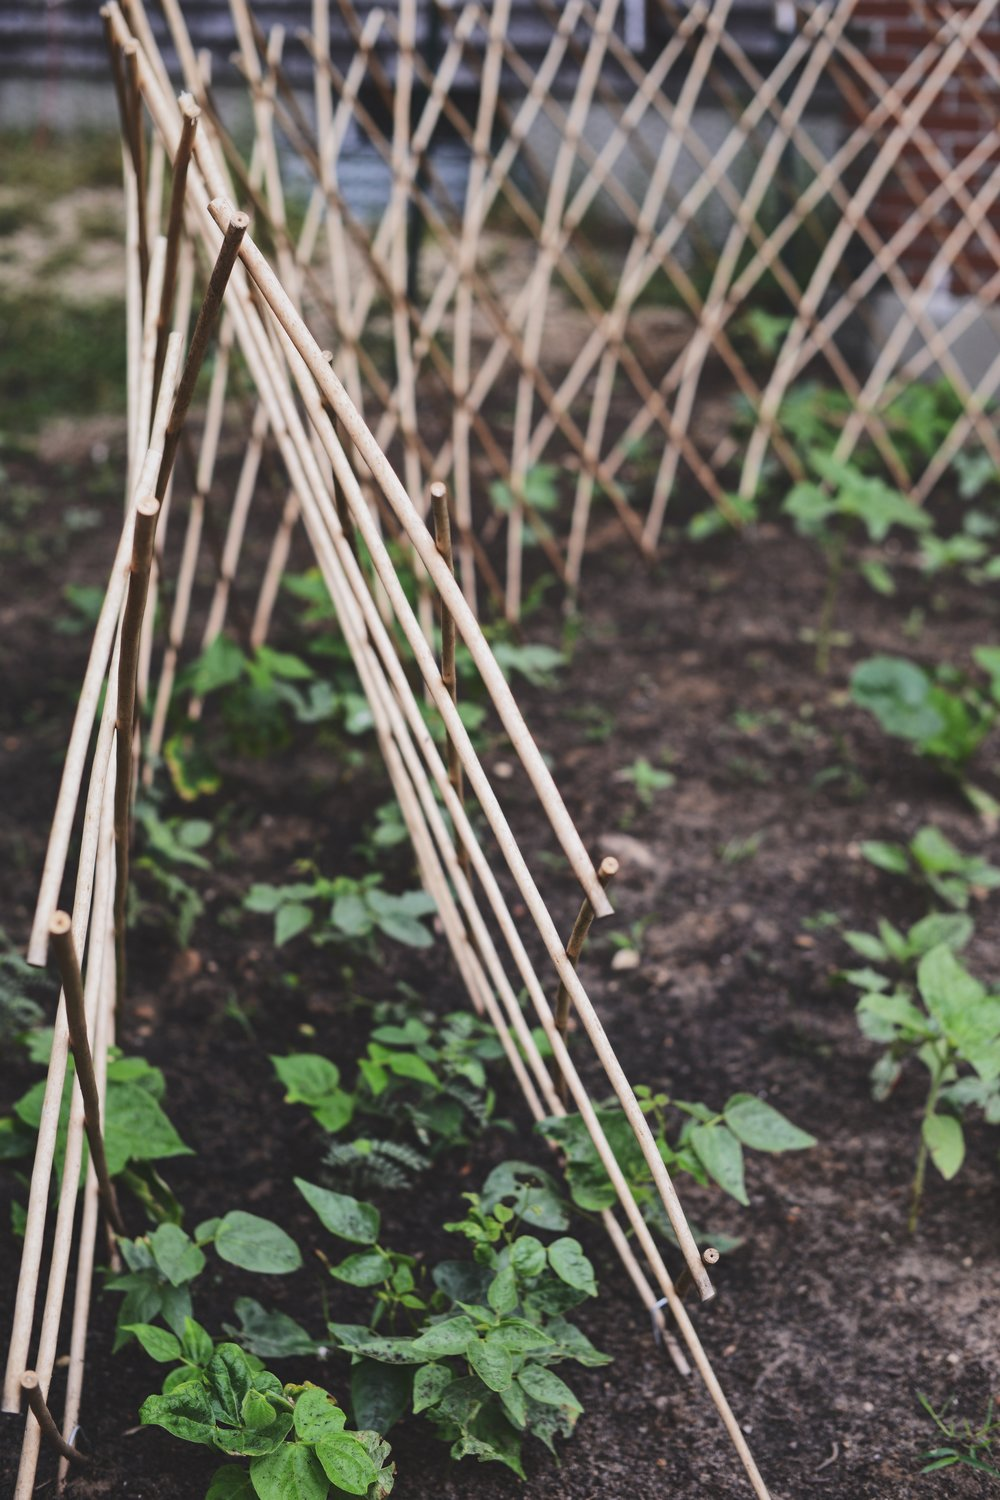 Marvelous Expandable Willow Trellis By Gardeners Supply Co.